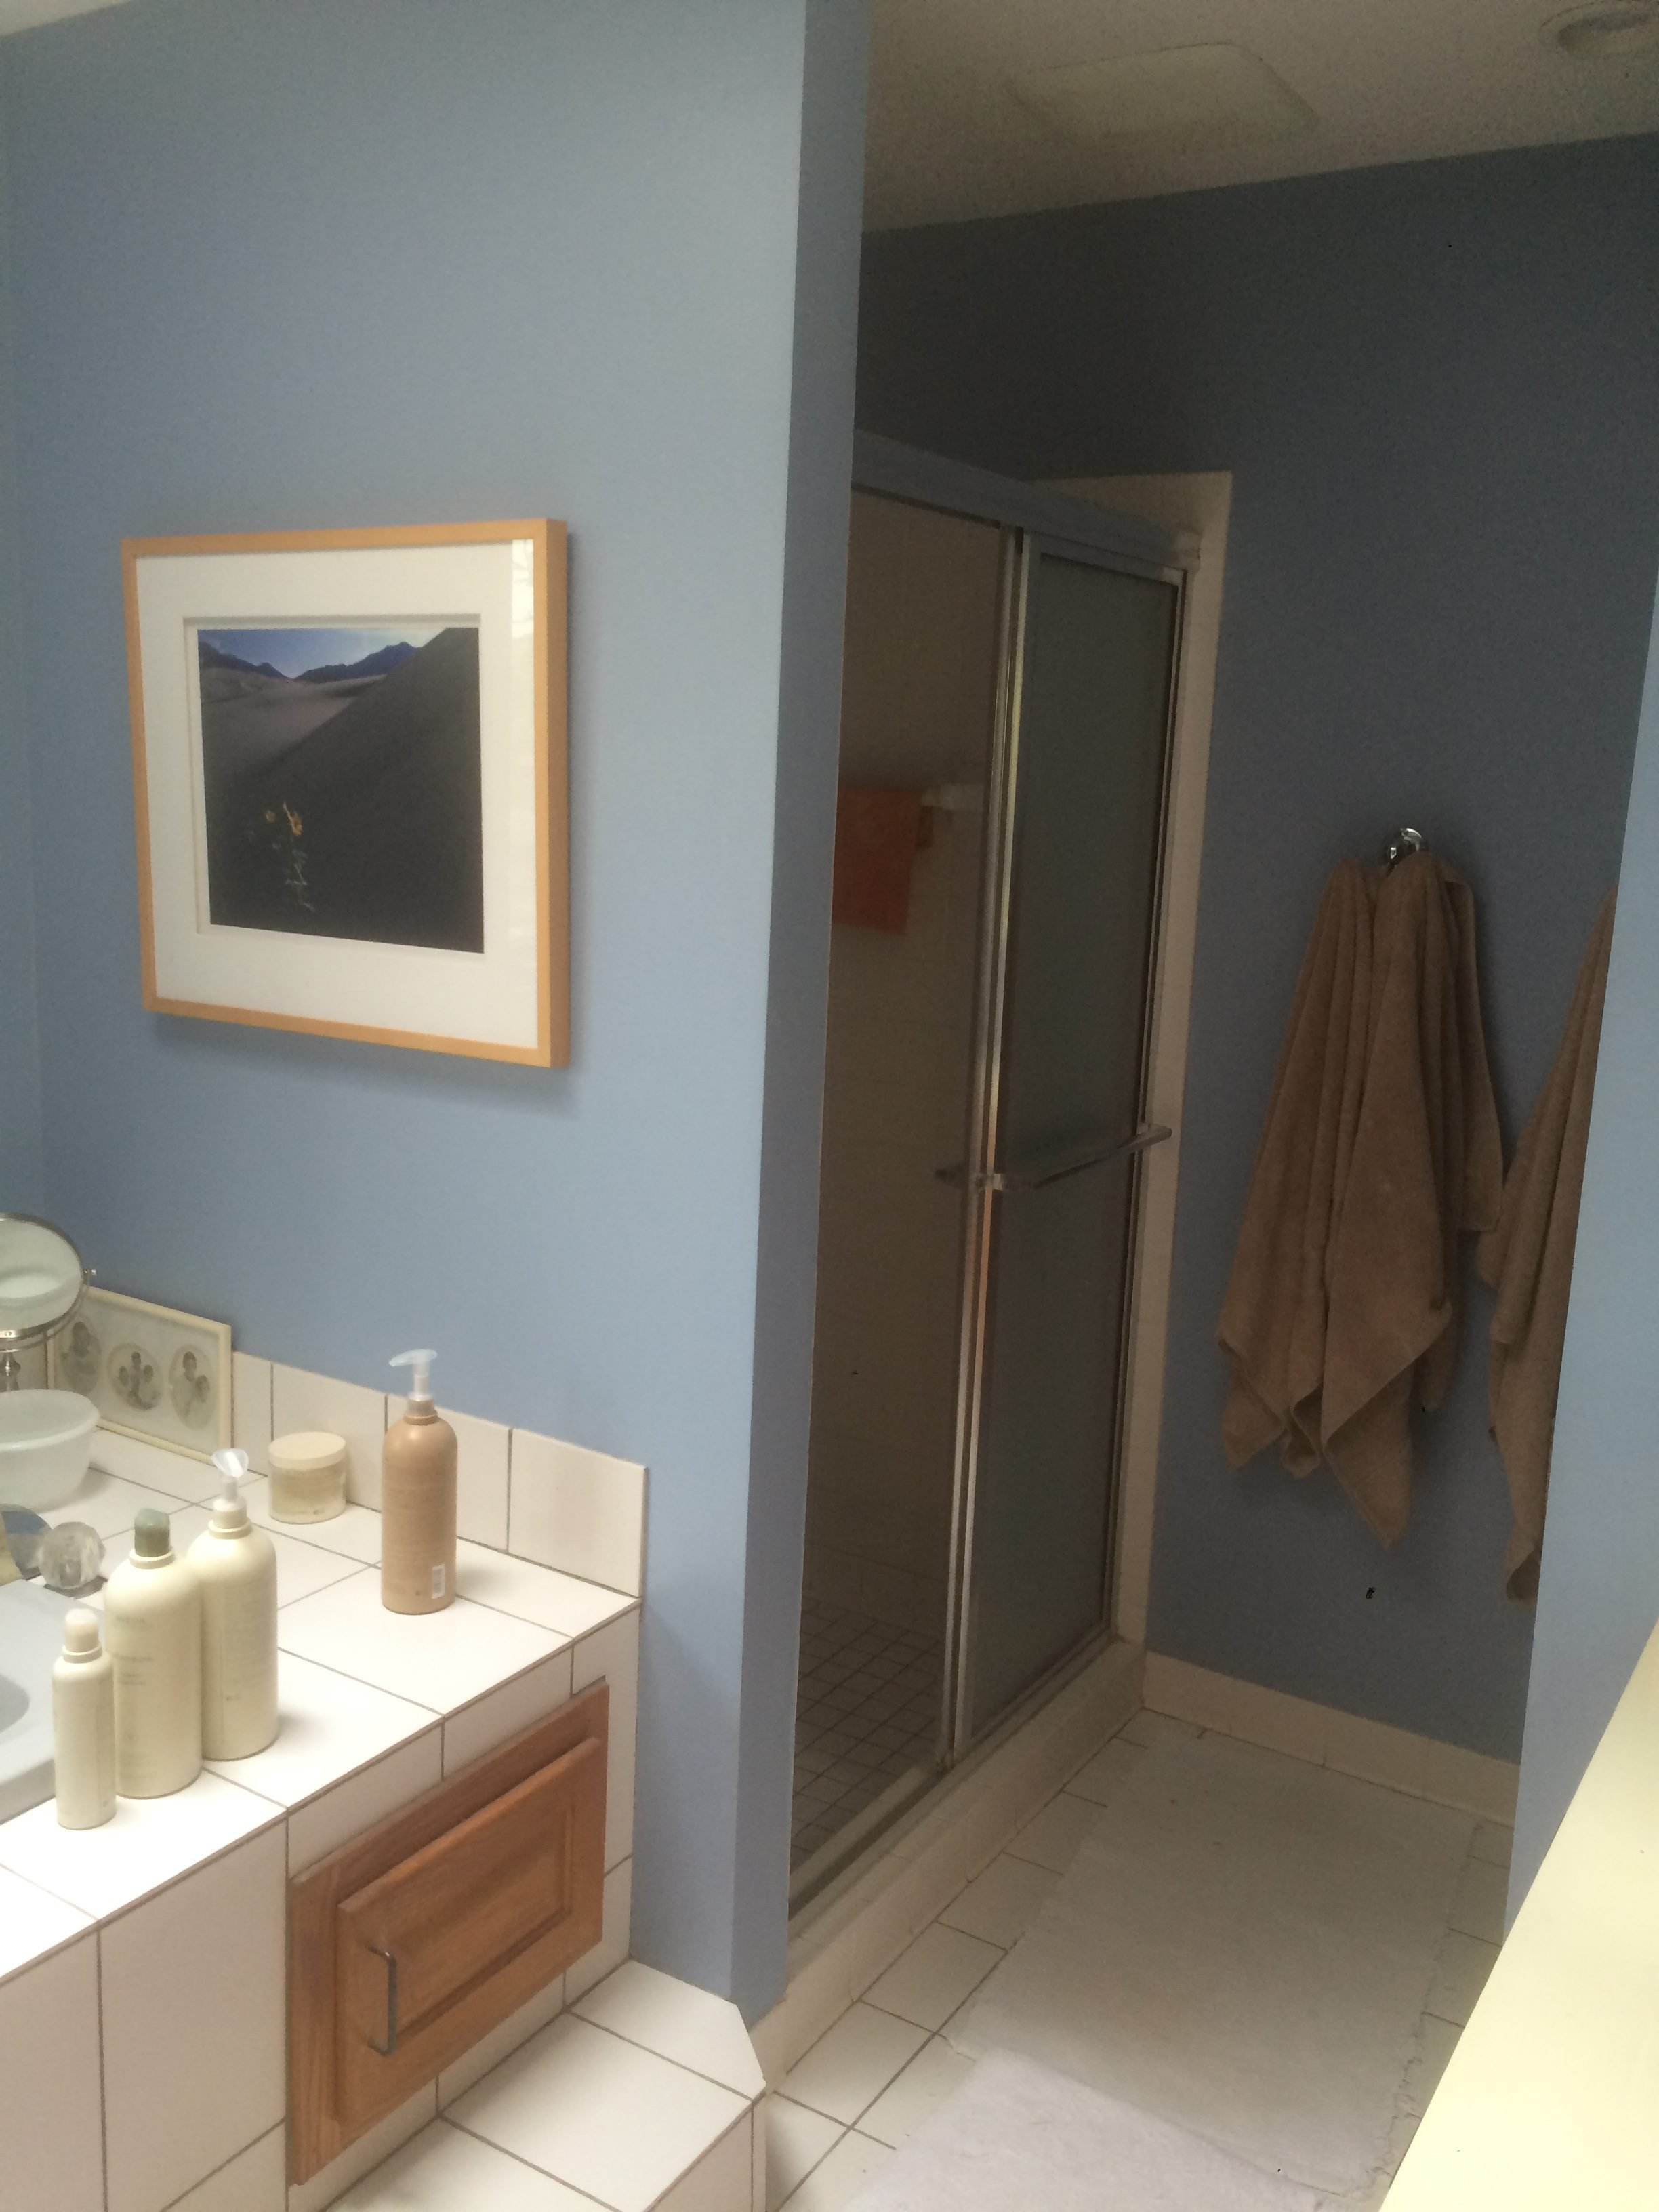 The shower area felt far too dark and small, separated from the rest of the space by a solid wall.